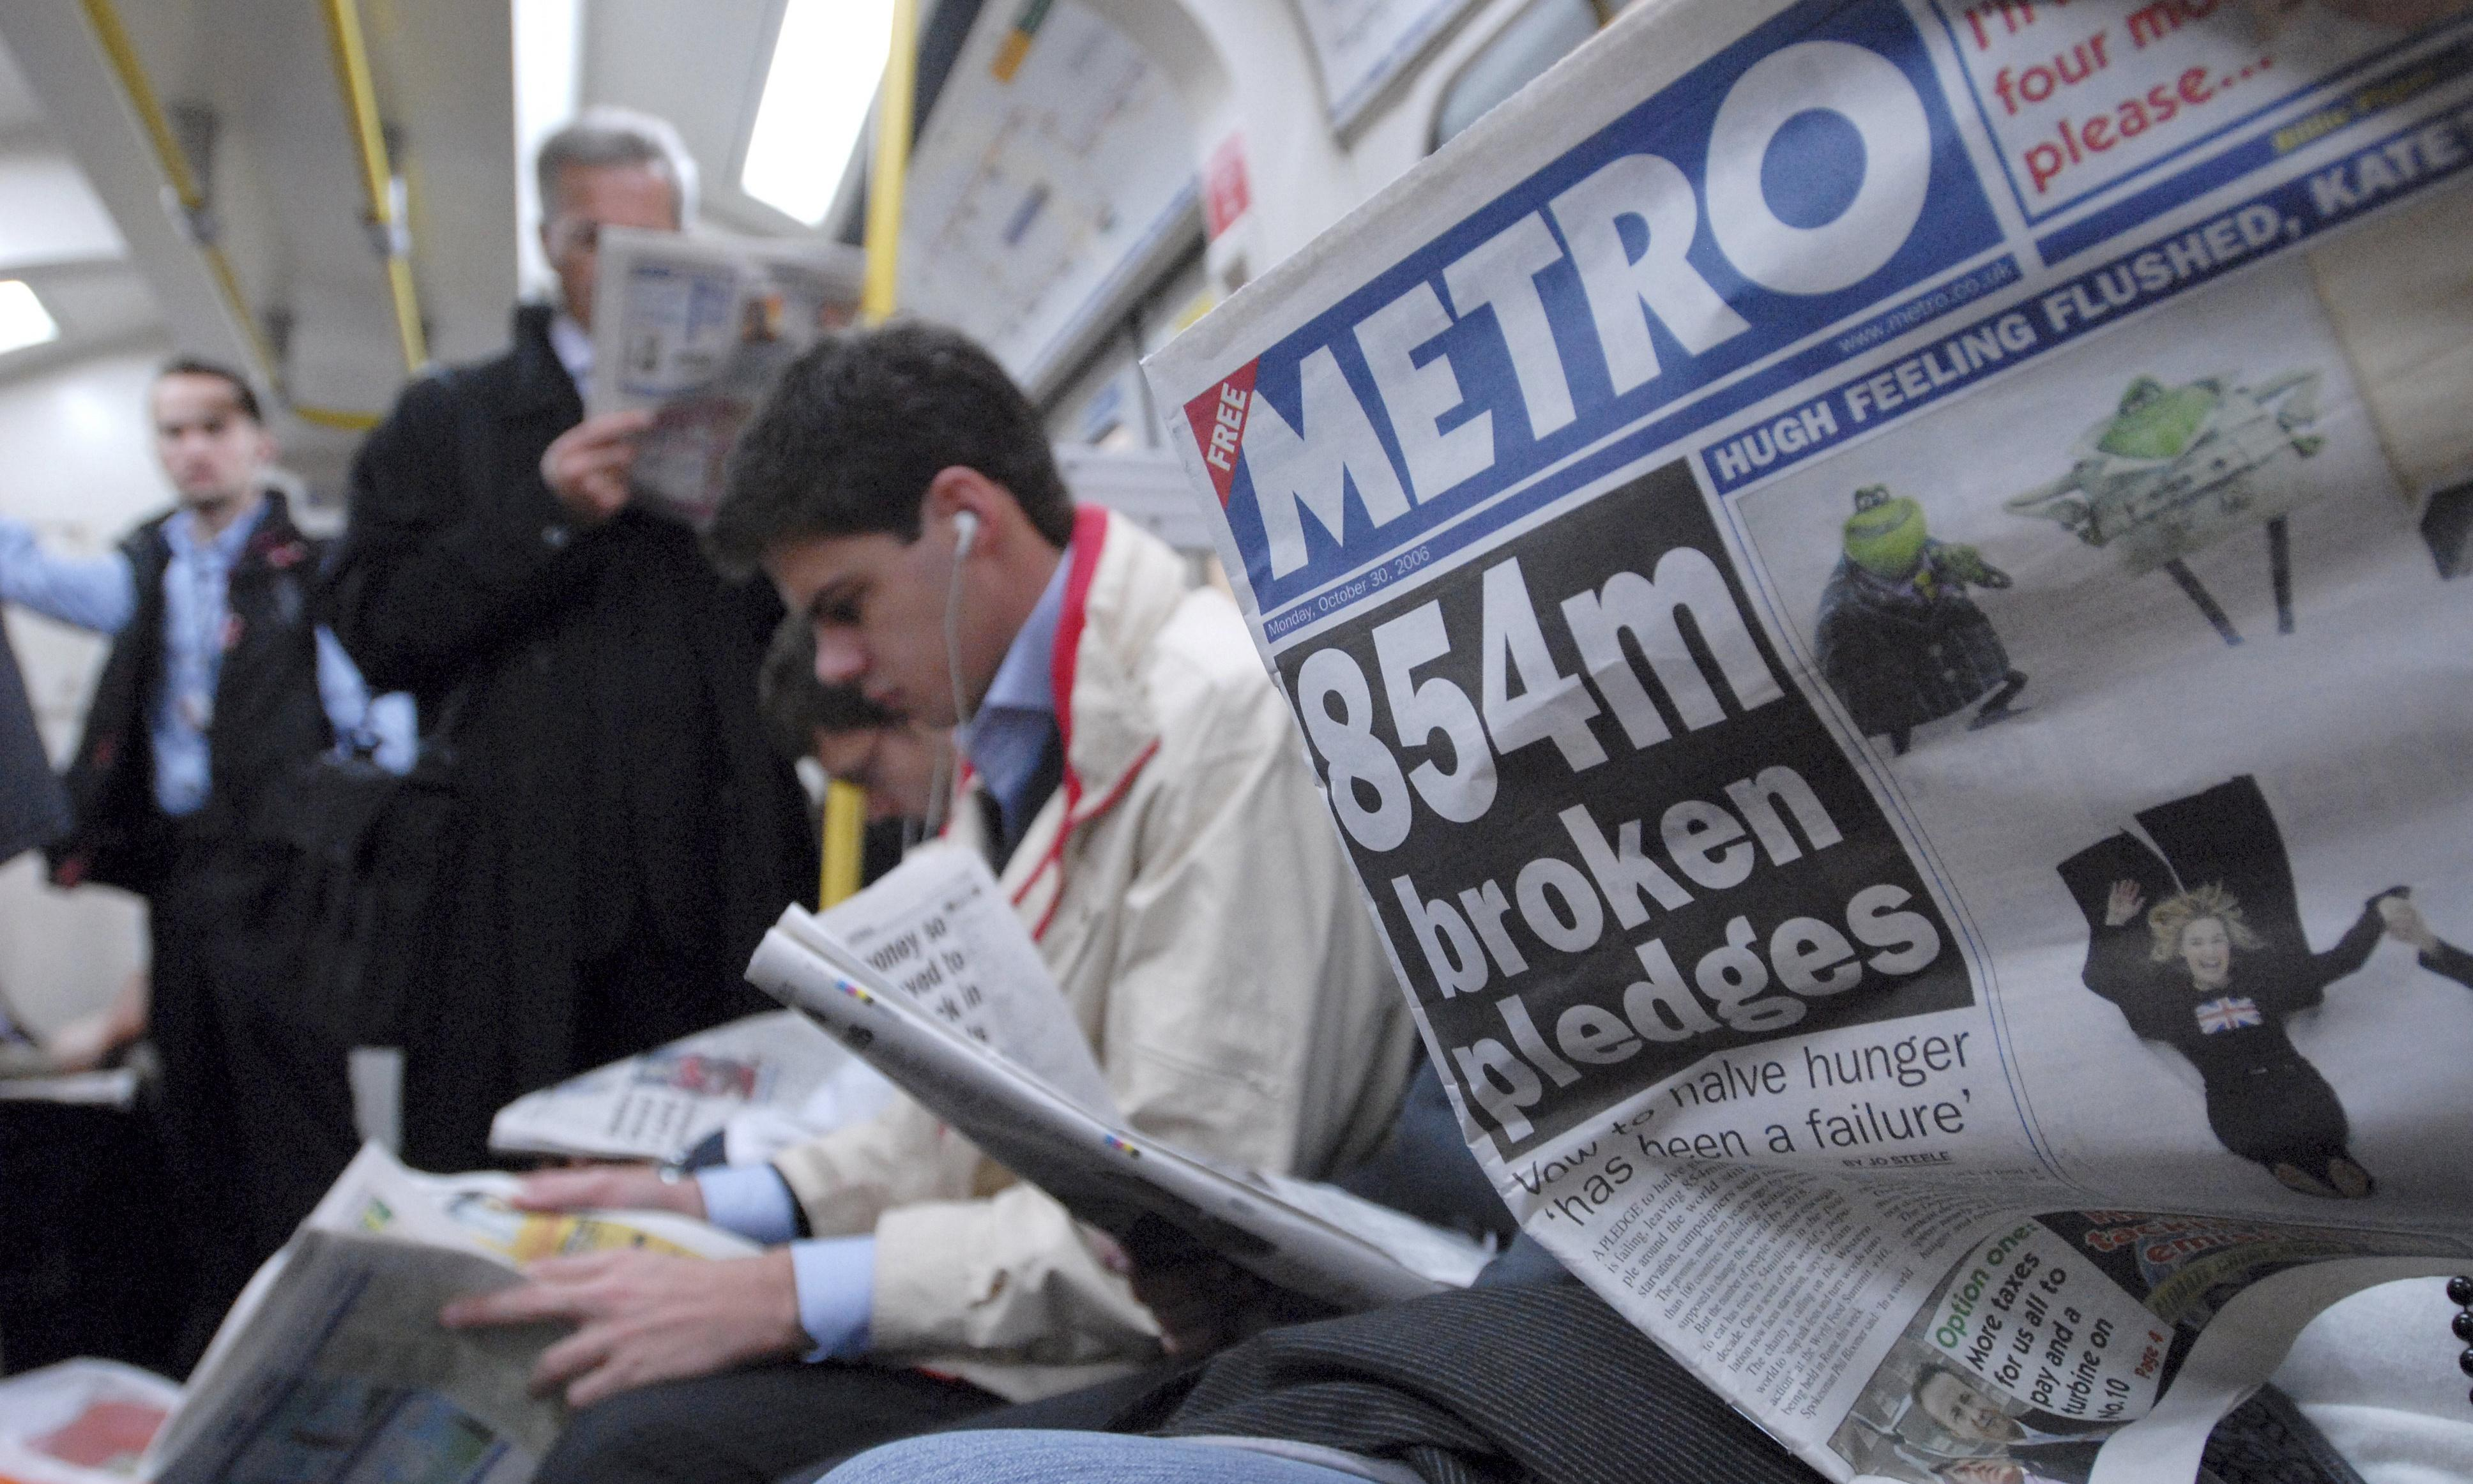 Metro's success is good news for life beyond the web